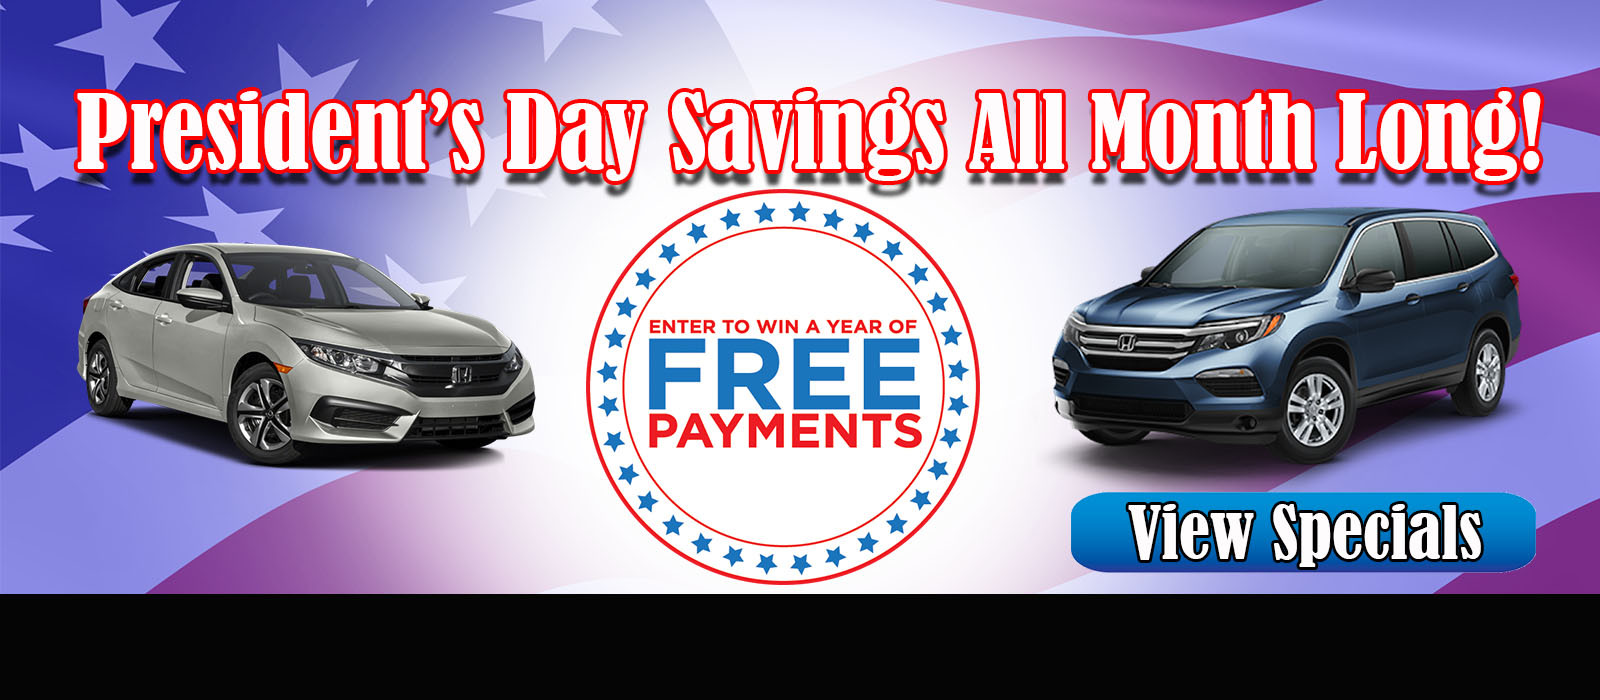 Free Payments Banner2